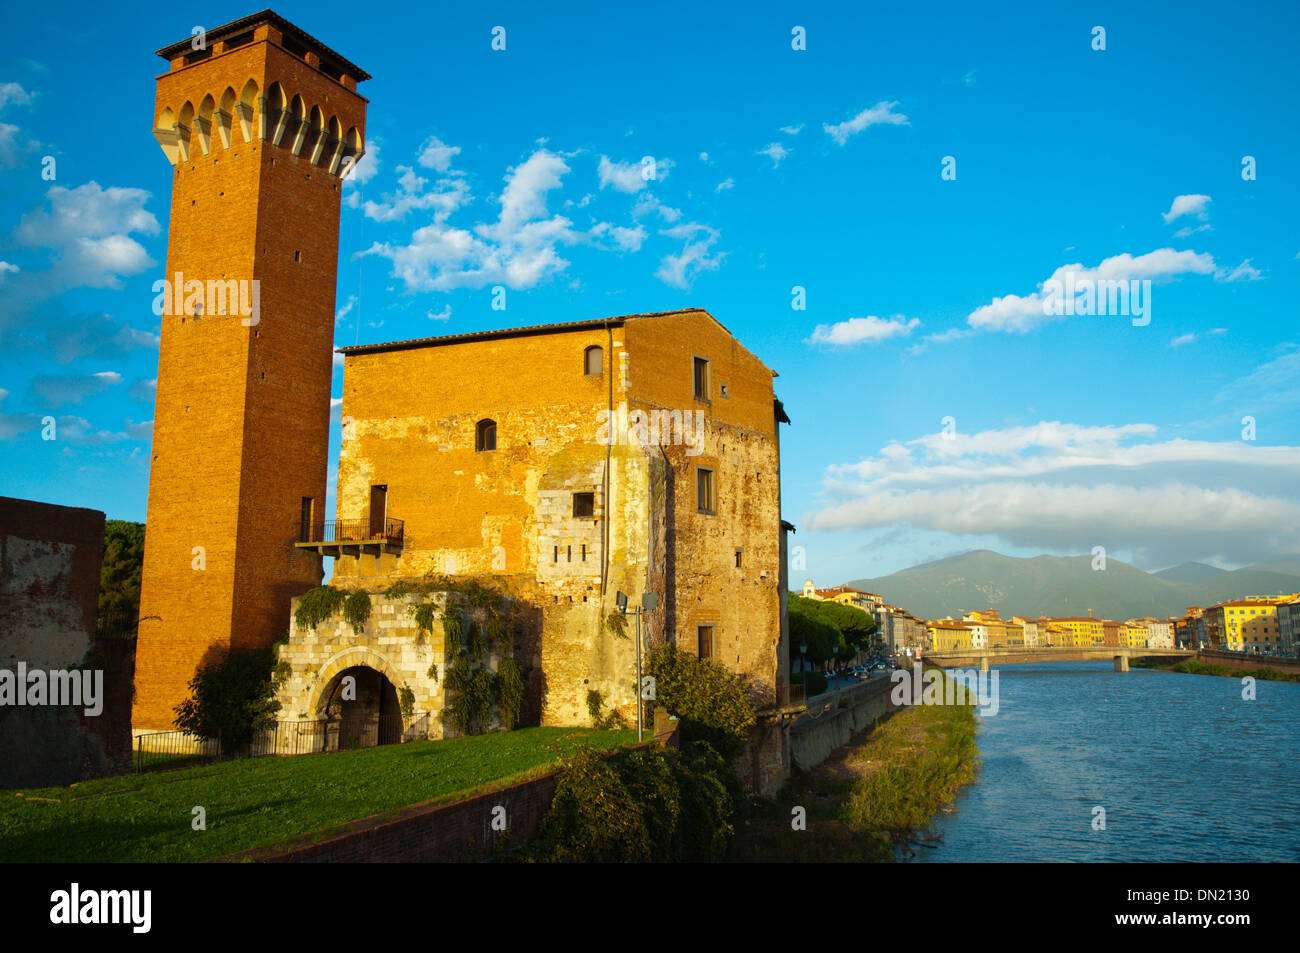 Fortezza Vecchia the old fortress by the River Arno central Pisa city Tuscany region Italy Europe Stock Photo